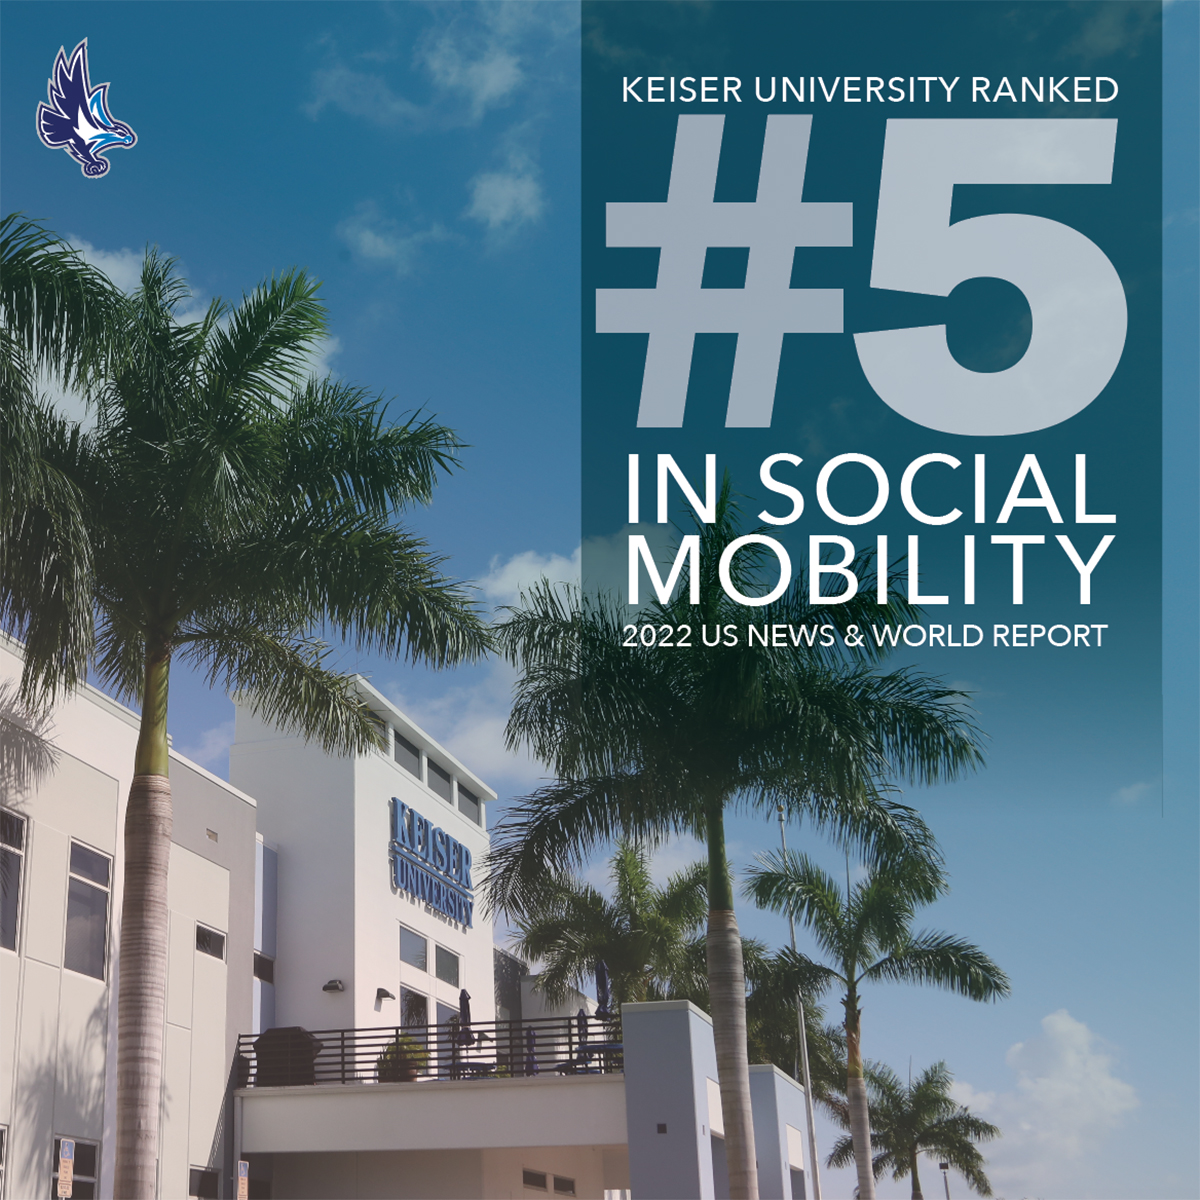 Keiser University Ranked No. 5 in Social Mobility by U.S. News and World Report